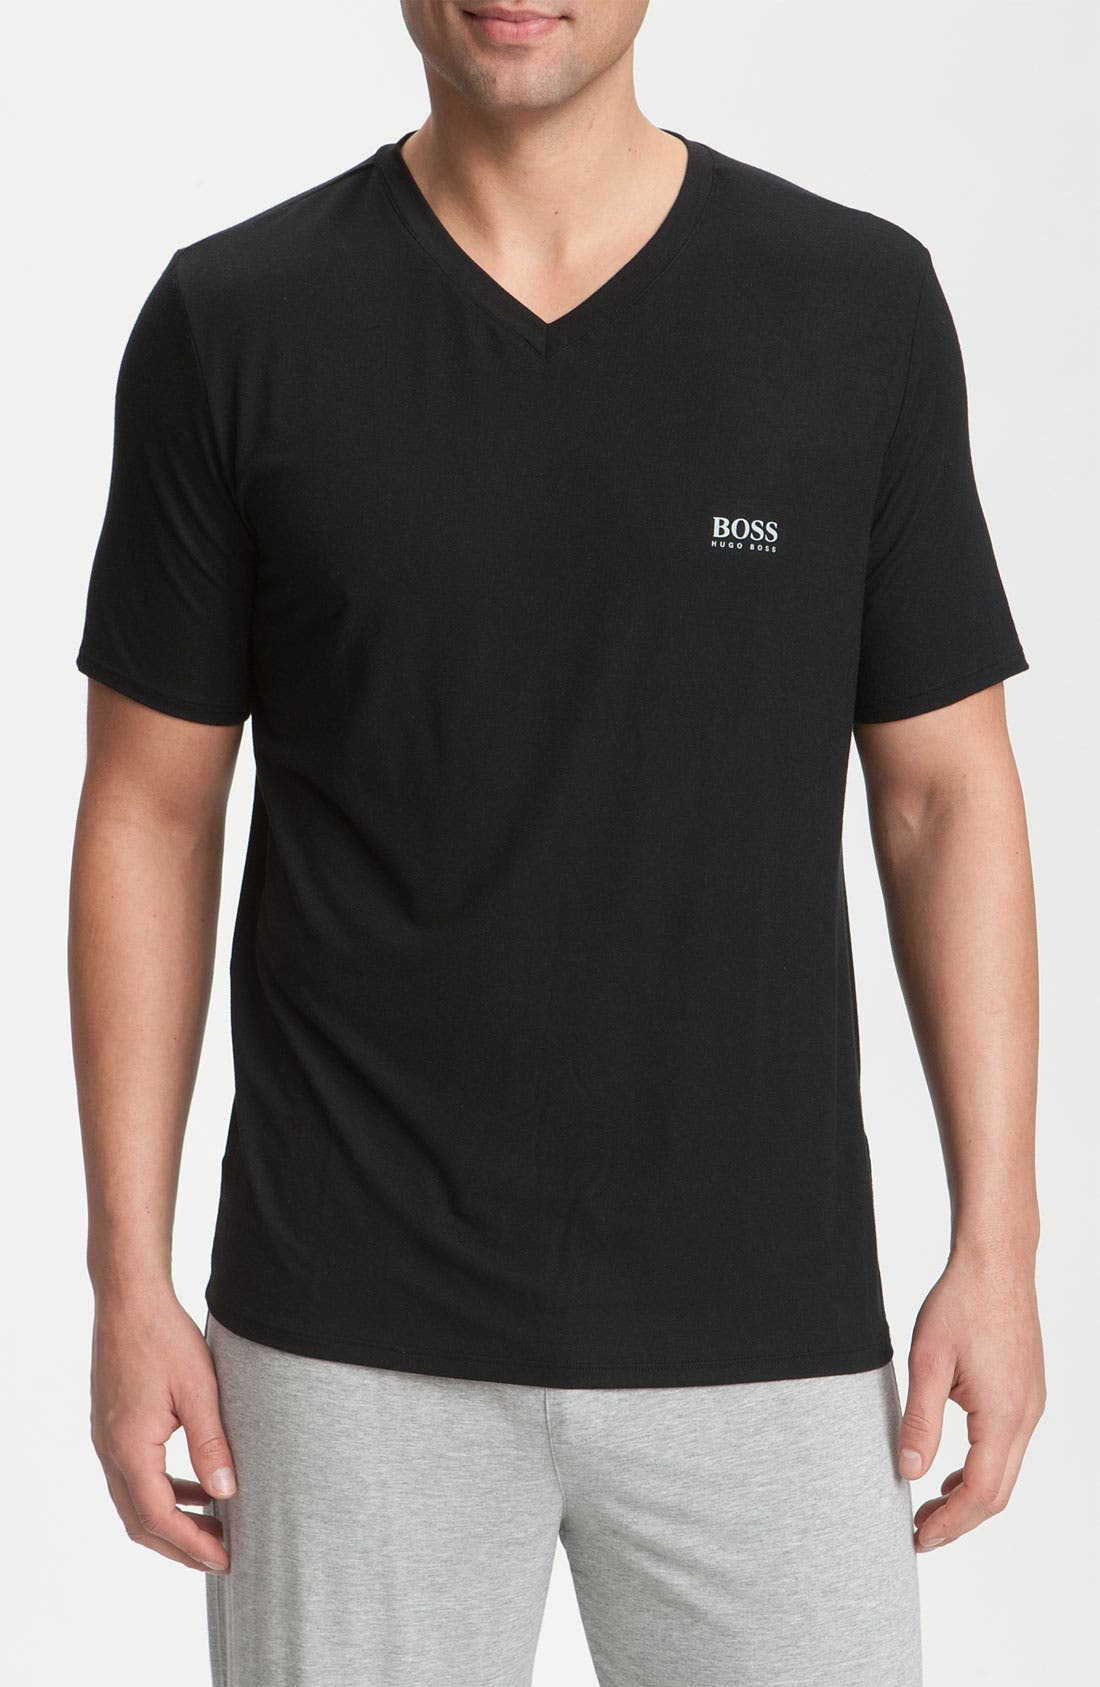 Alternate Image 1 Selected - BOSS 'Innovation 5' V-Neck T-Shirt